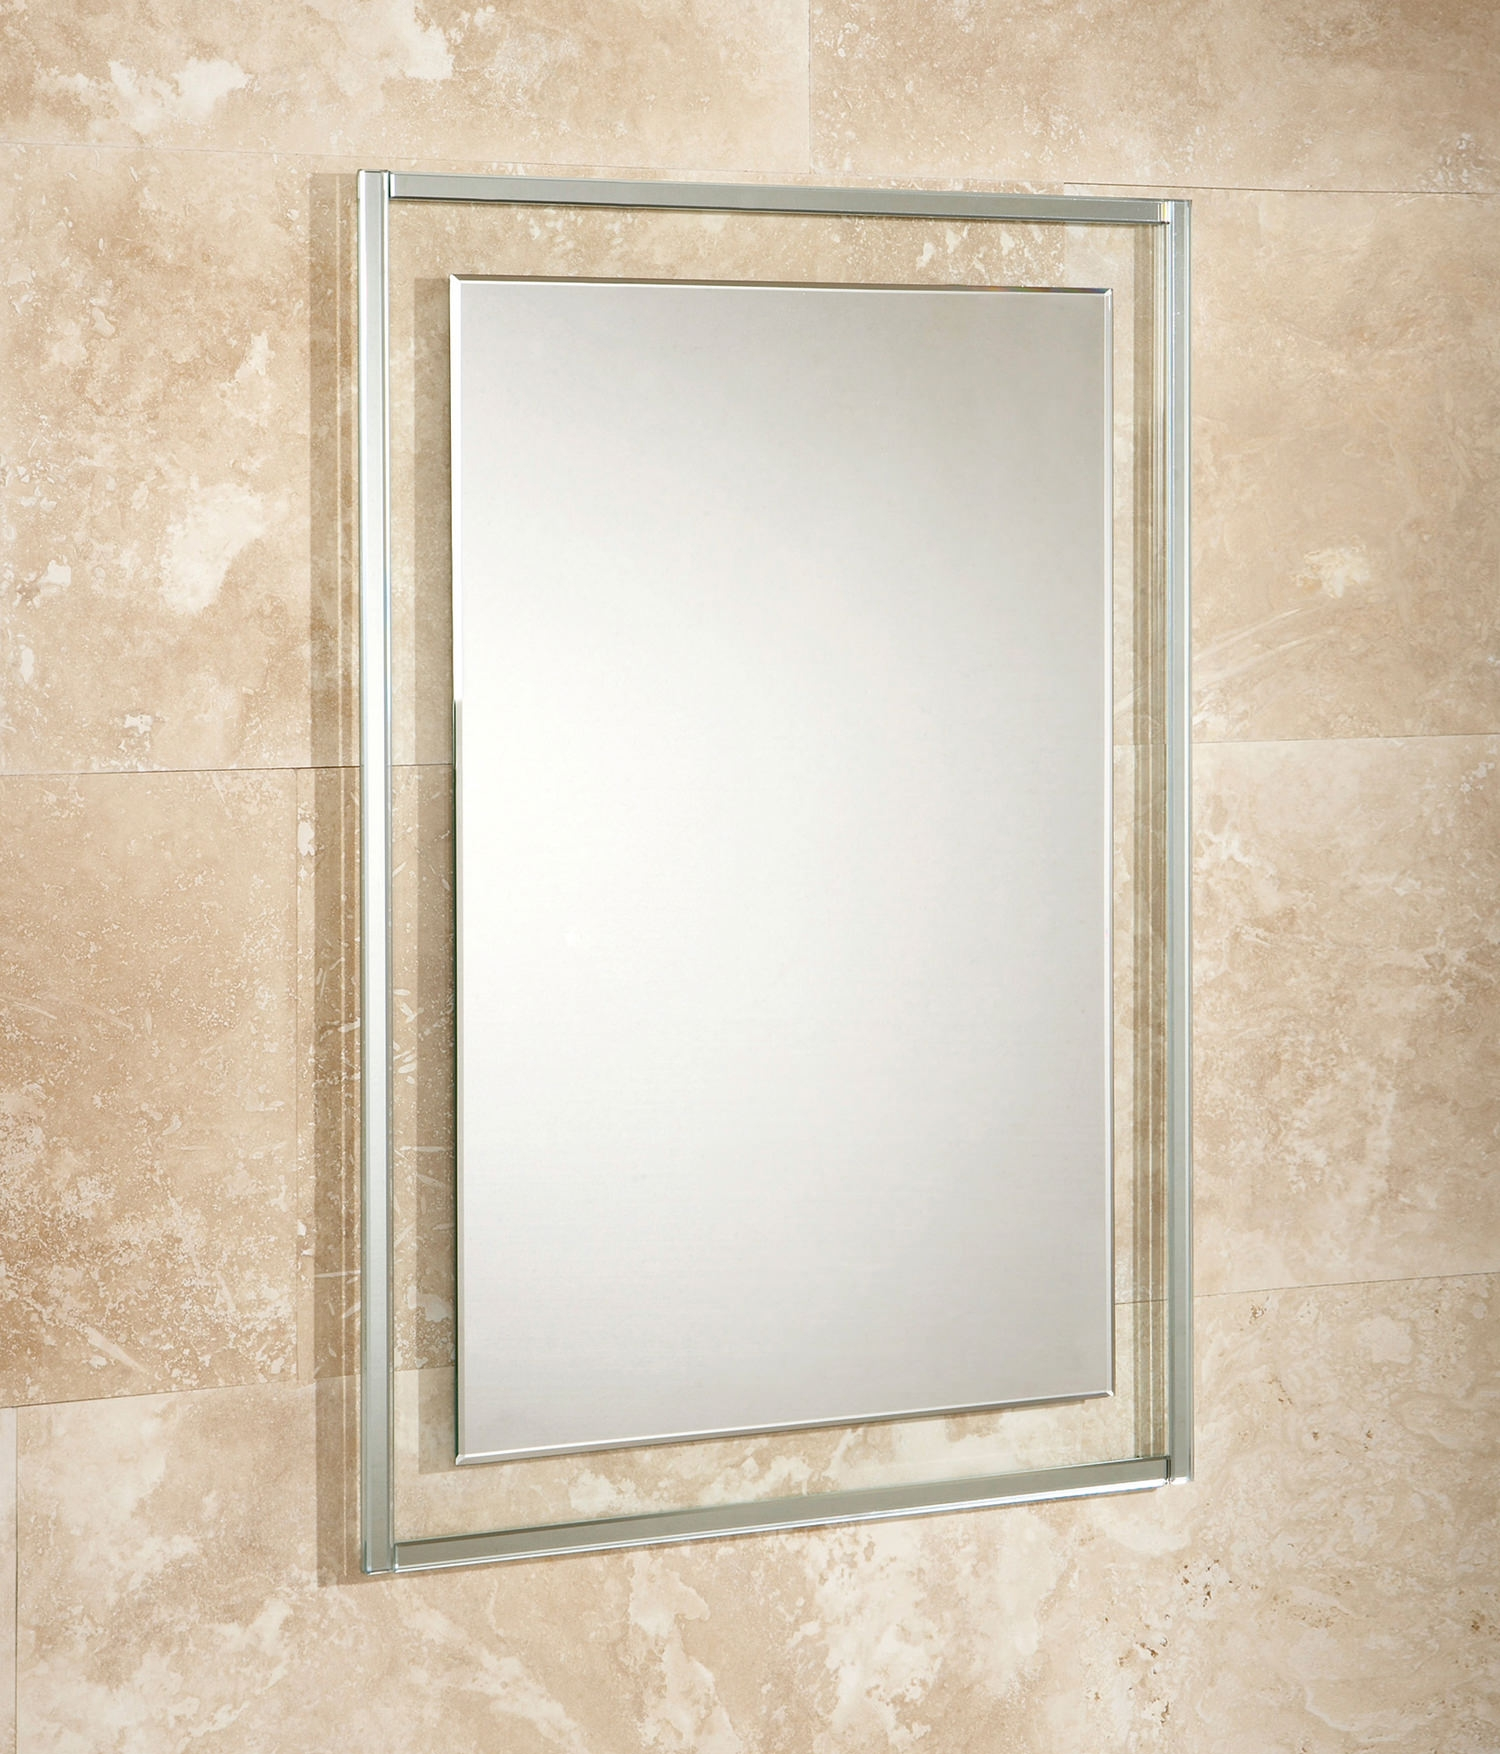 Hib Georgia Bevelled Edge Mirror On Clear Glass Frame 500 X 700mm In Bevelled Edge Mirrors (View 3 of 15)